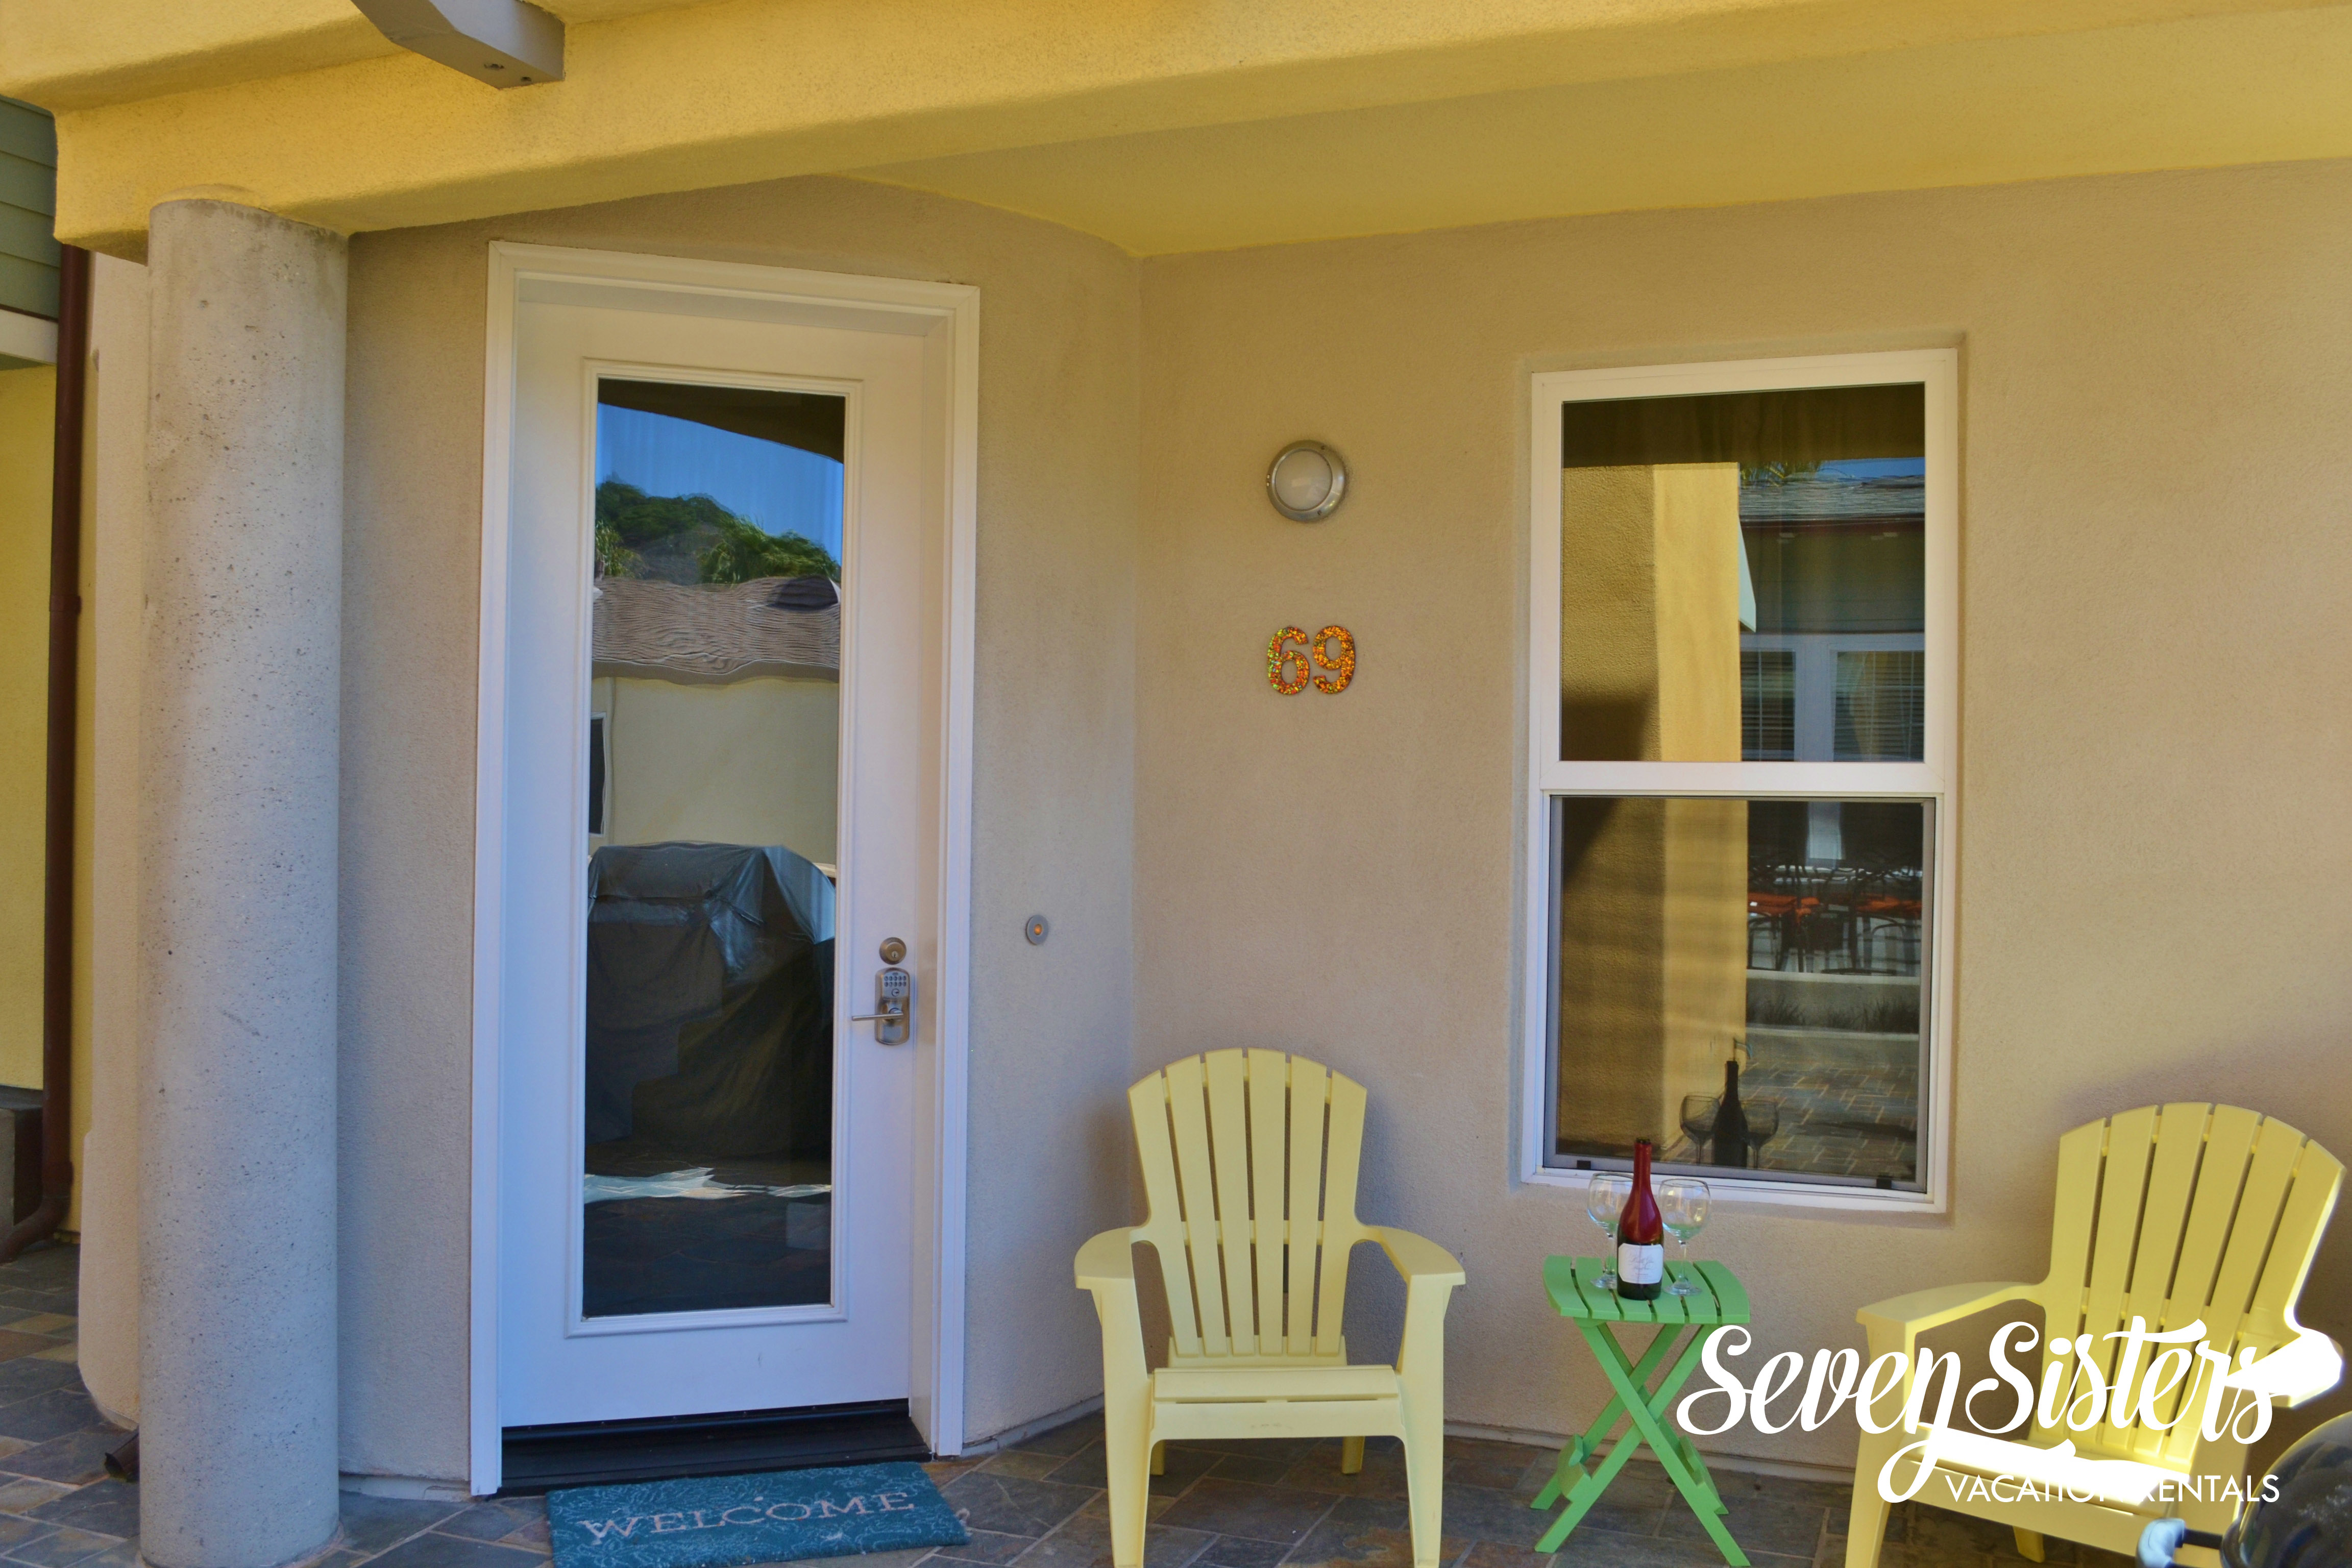 Seven Sisters Vacation Rentals image 4